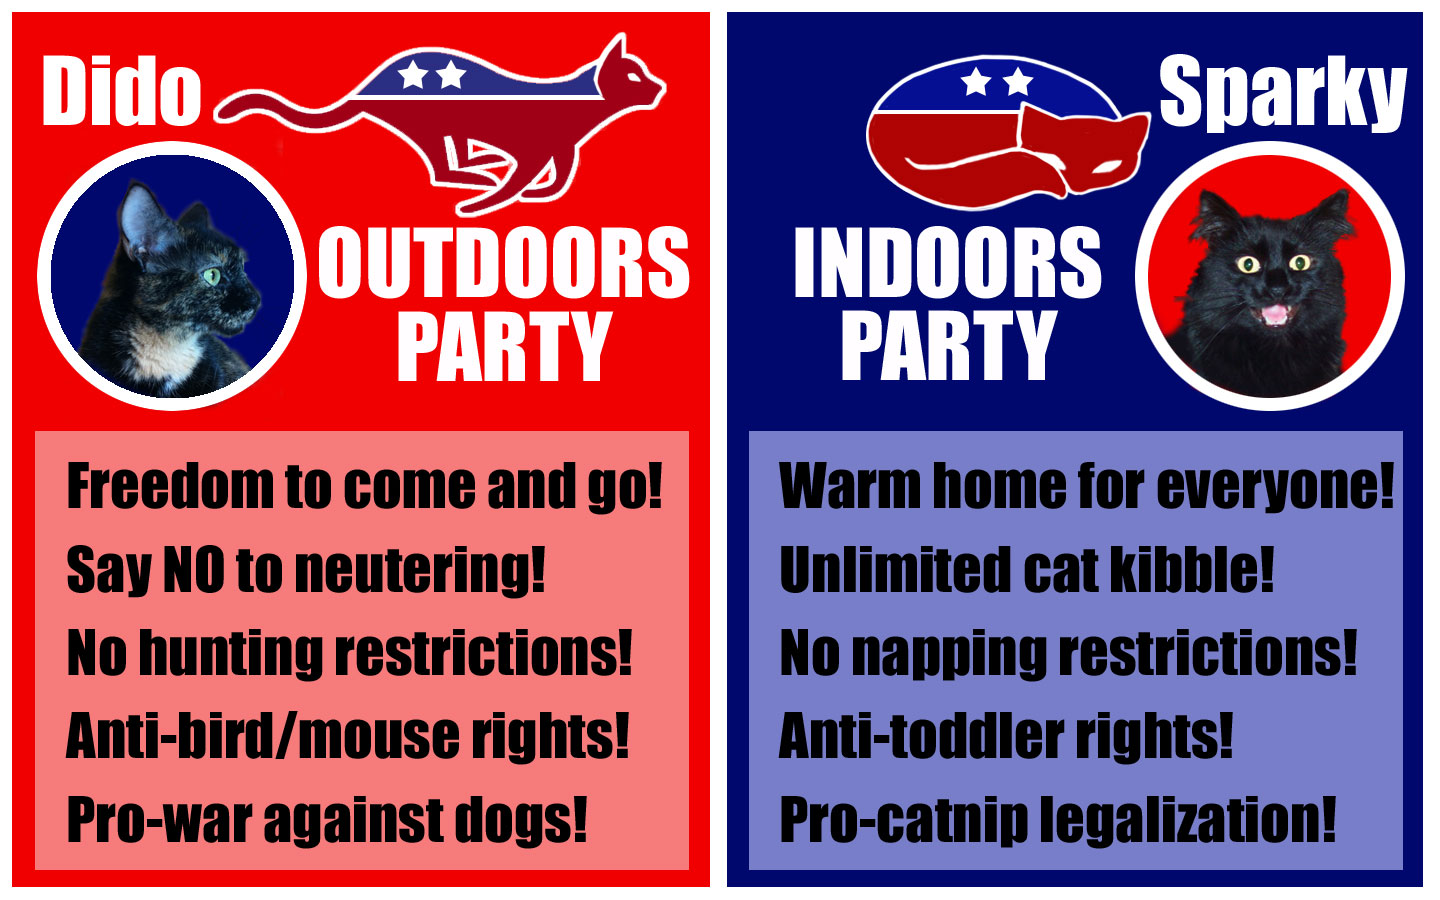 Although I don't agree with all their views, I love both kitties! Same thing with all my friends and family.    I want to help all of them understand their opponents' point-of-view in a supportive and loving way. Knowledge is power!